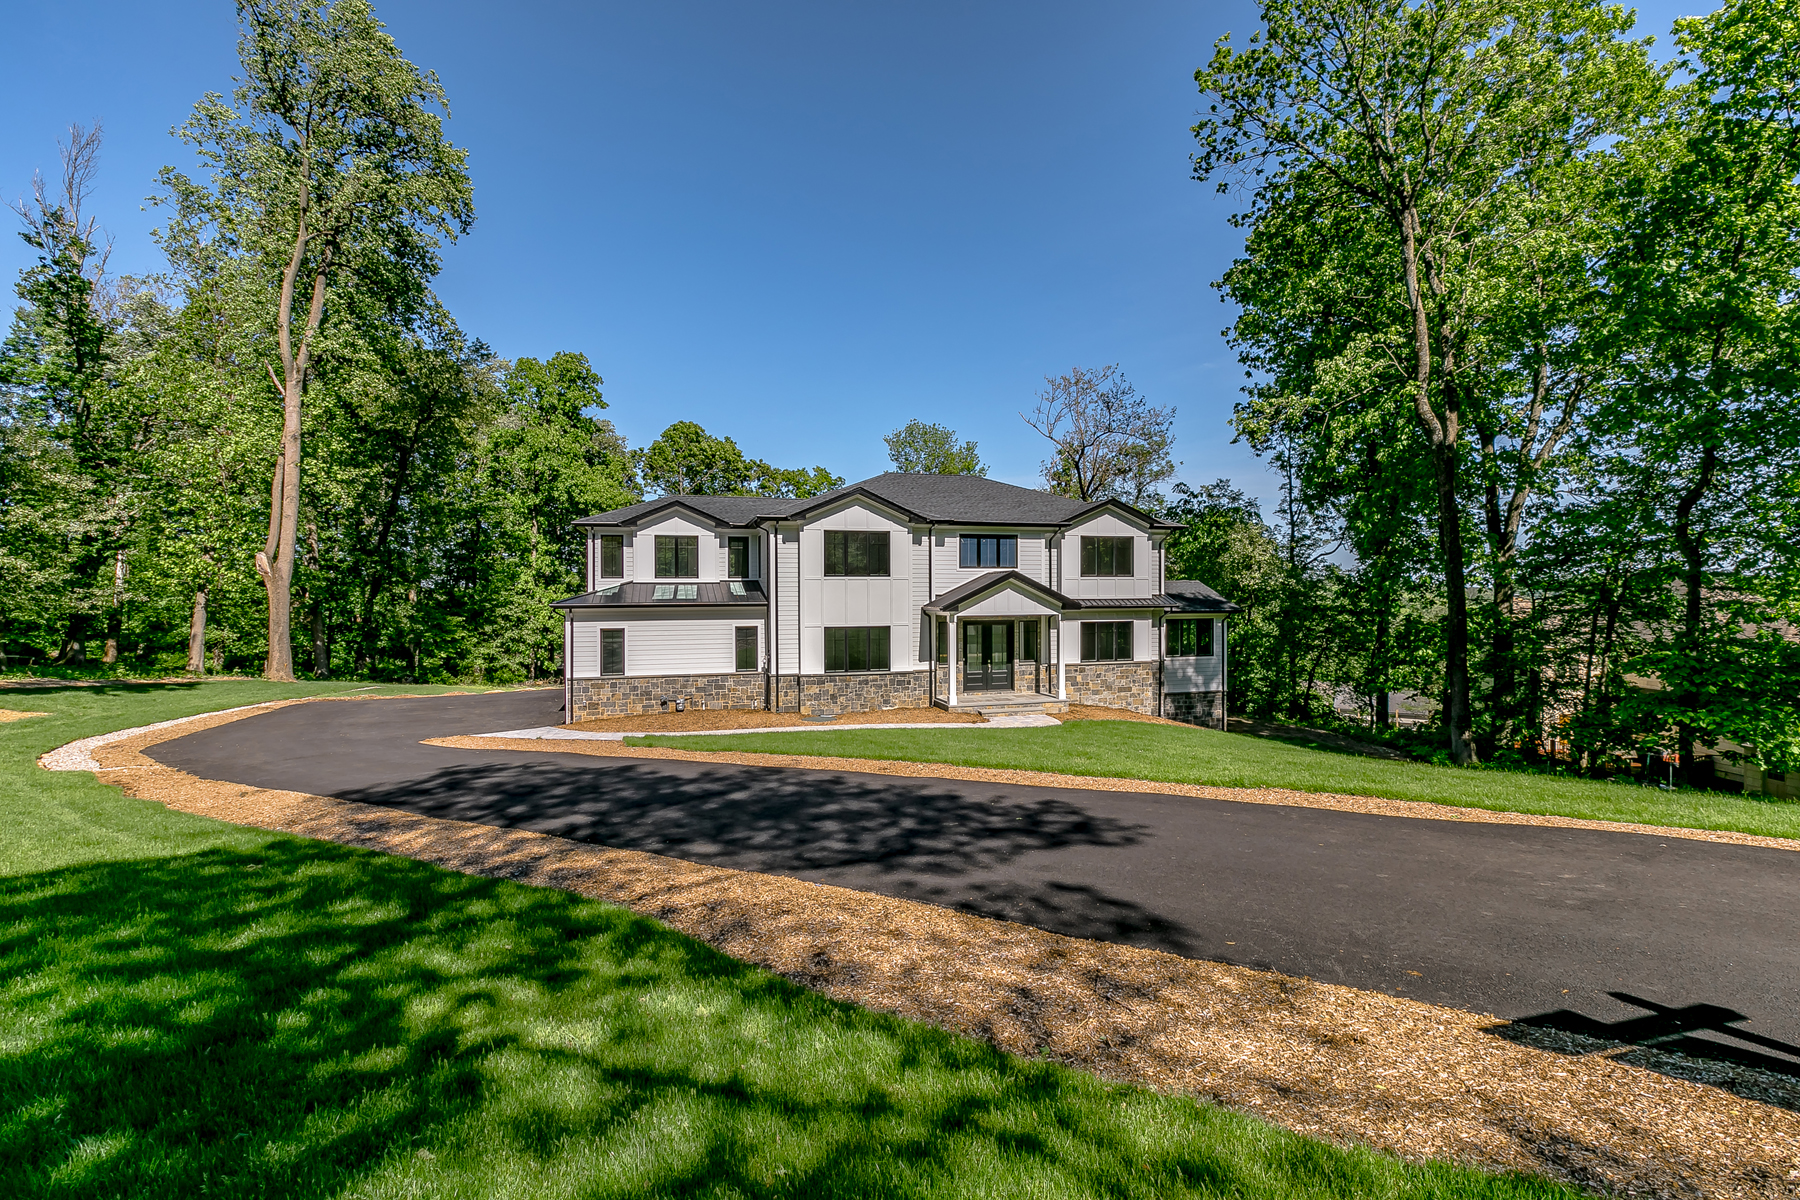 Single Family Homes for Sale at Traditional craft and Modern creativity 4 Stratford Court Morris Township, New Jersey 07960 United States